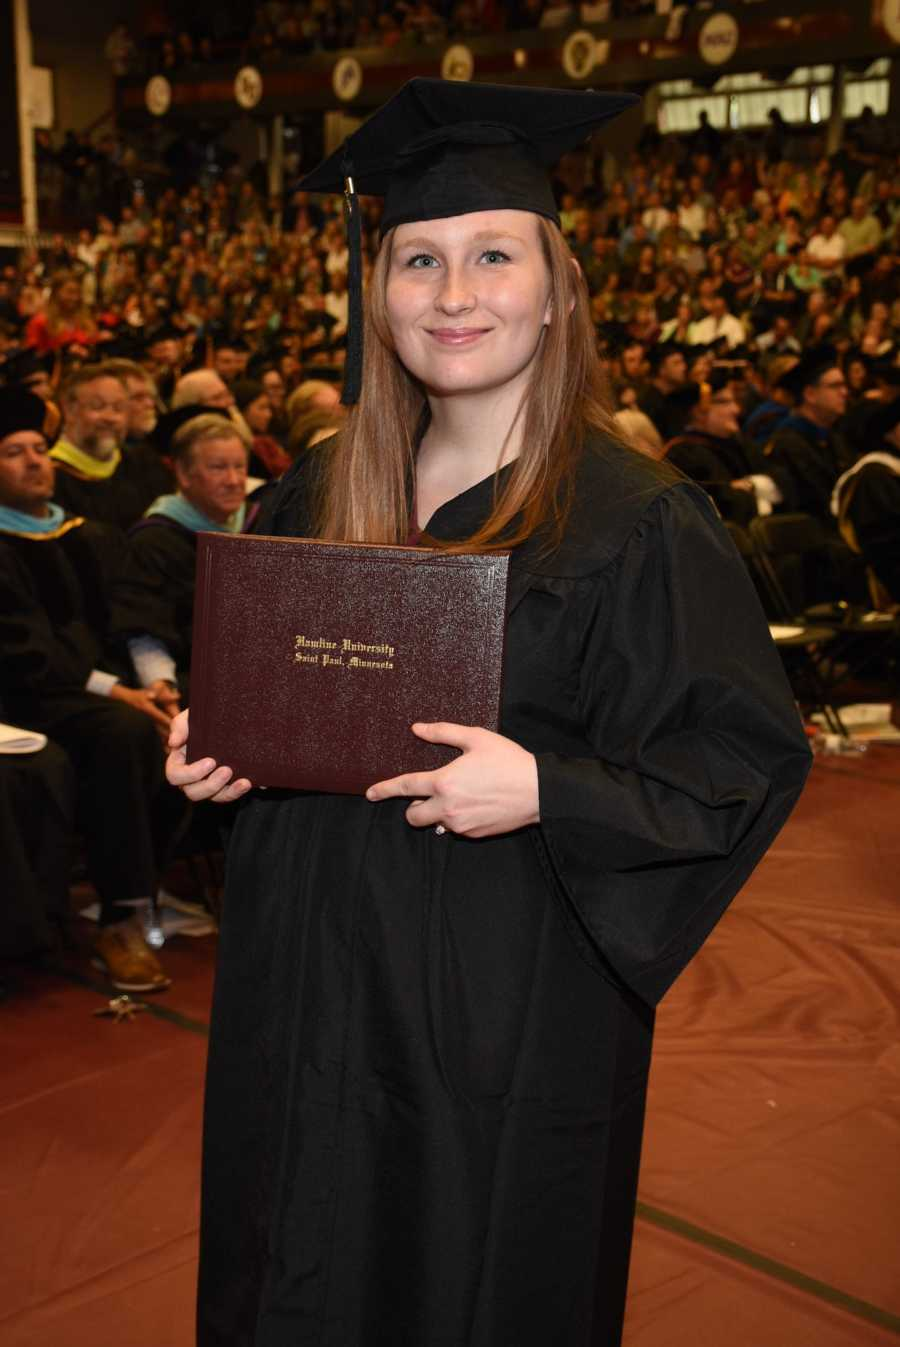 College graduate wearing cap and gown and holding diploma at graduation